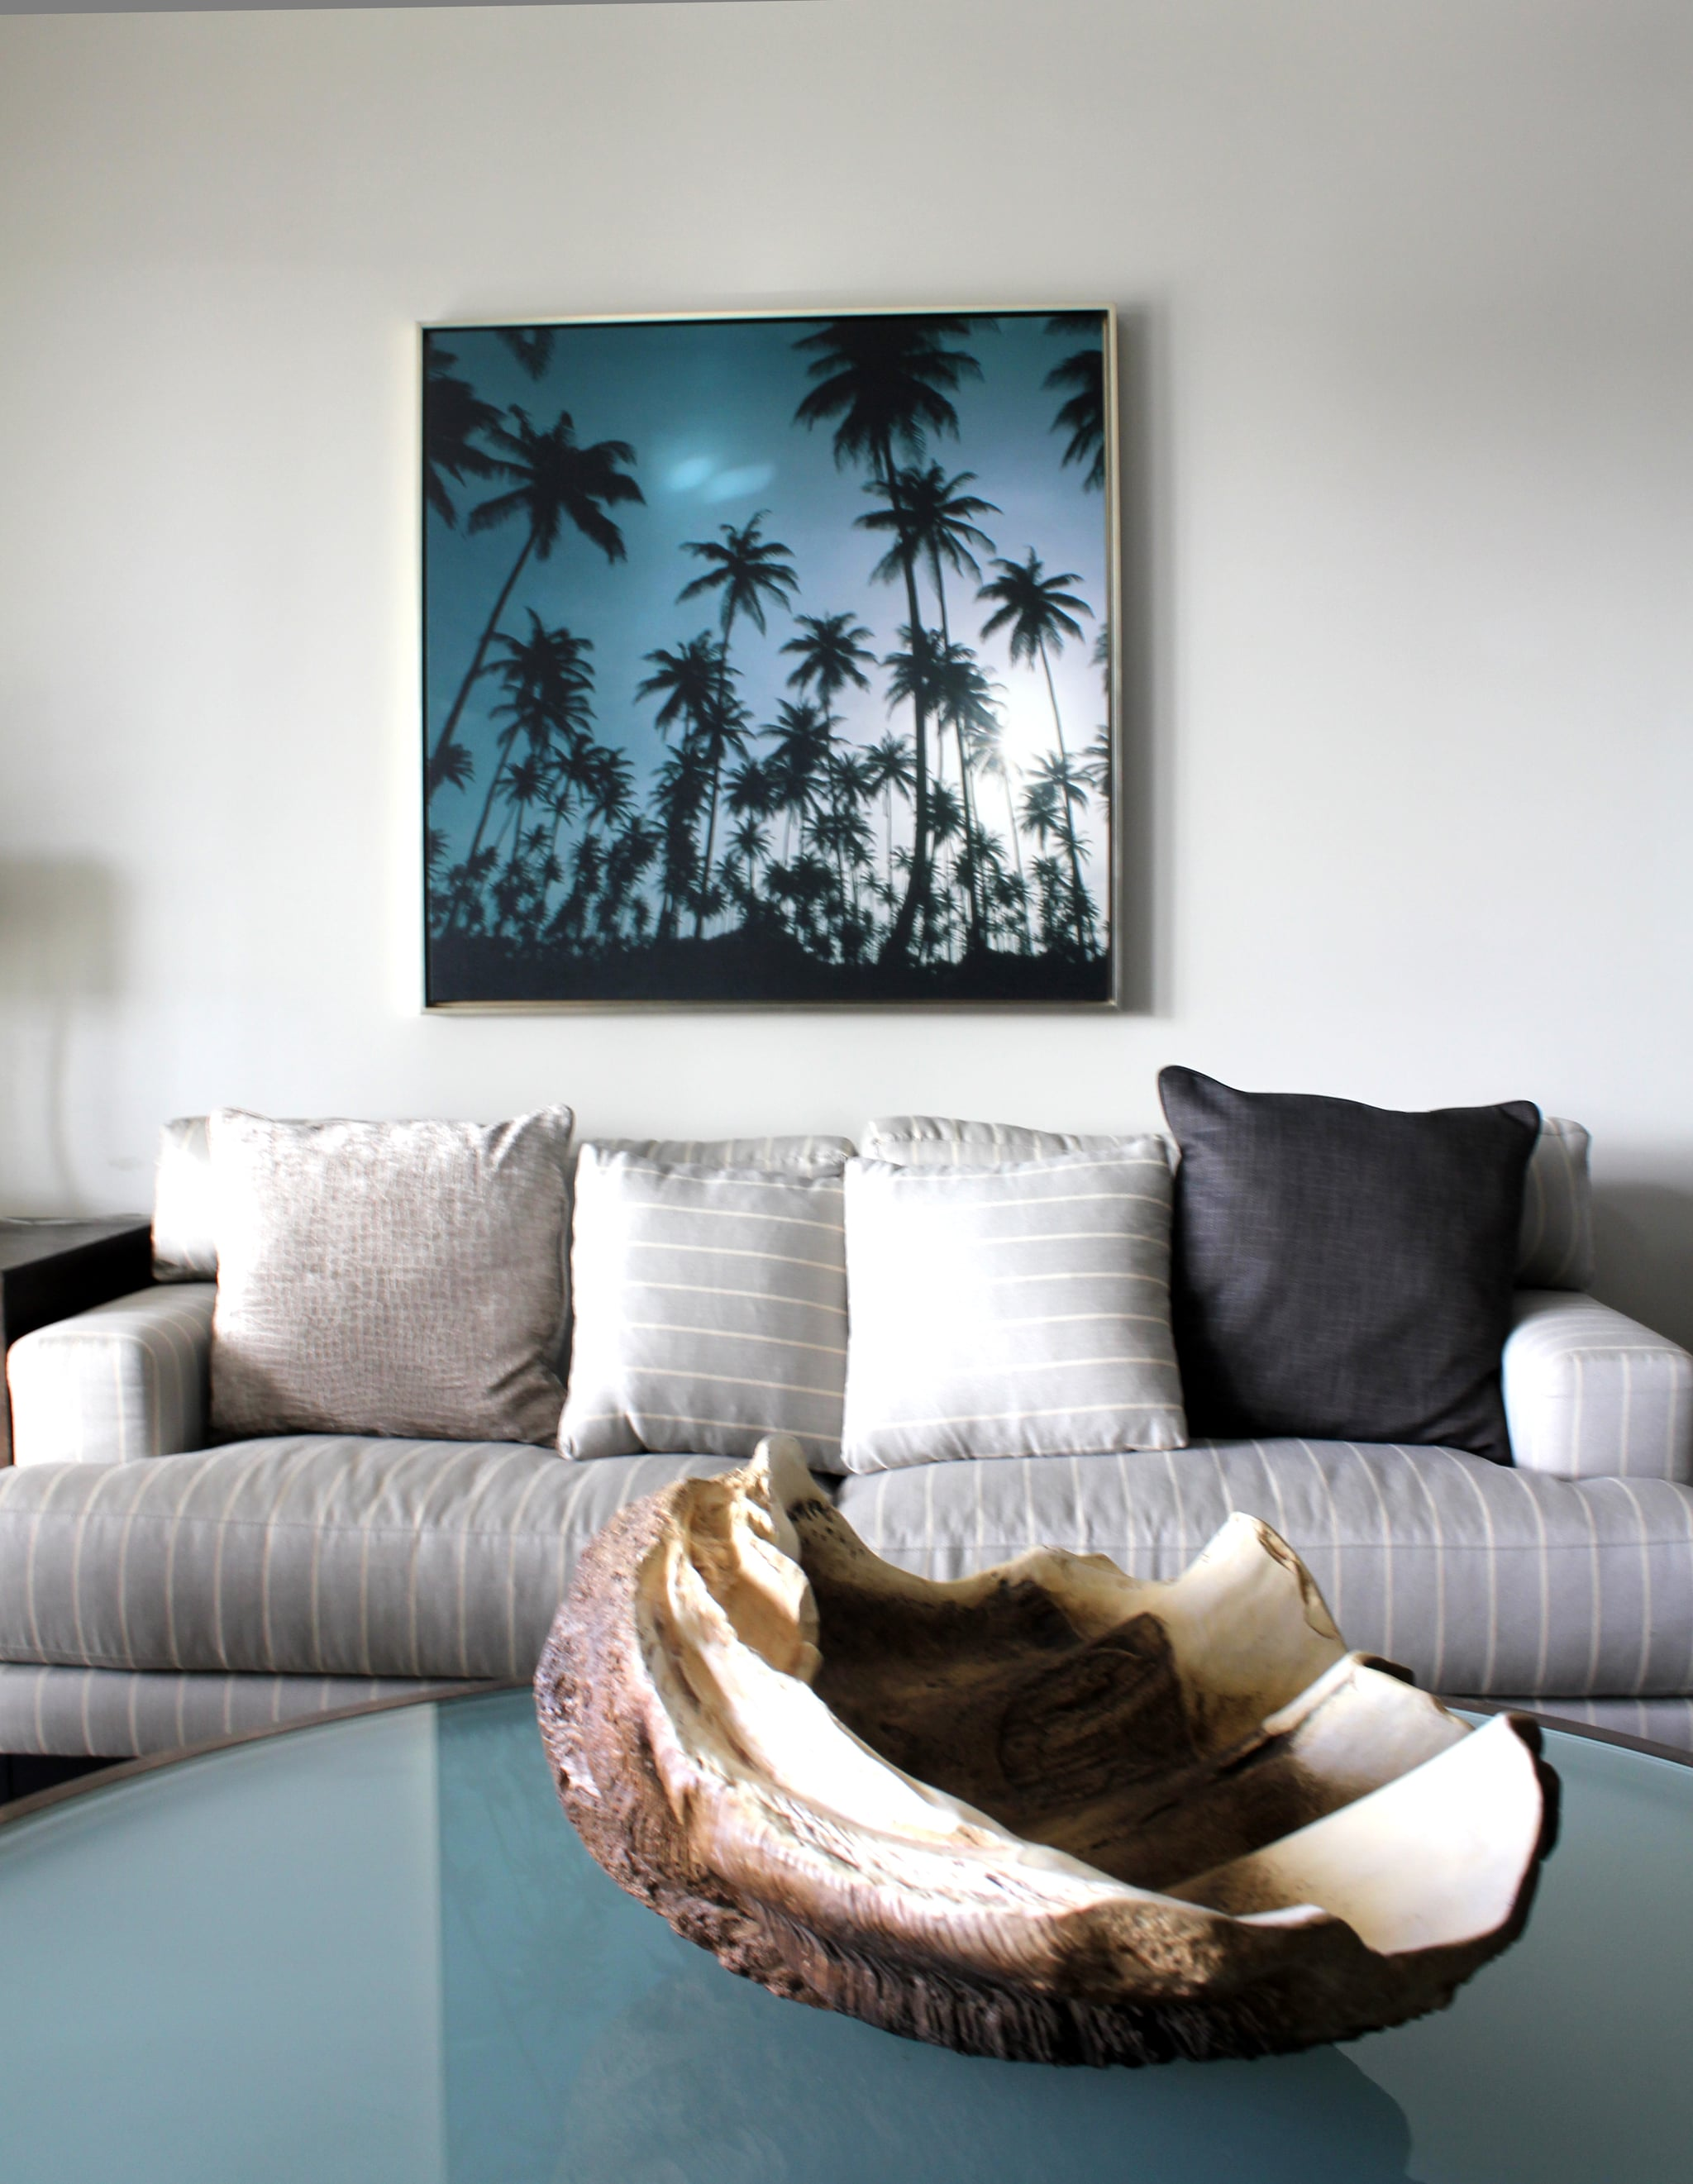 How to buy a couch popsugar home australia share this link parisarafo Choice Image